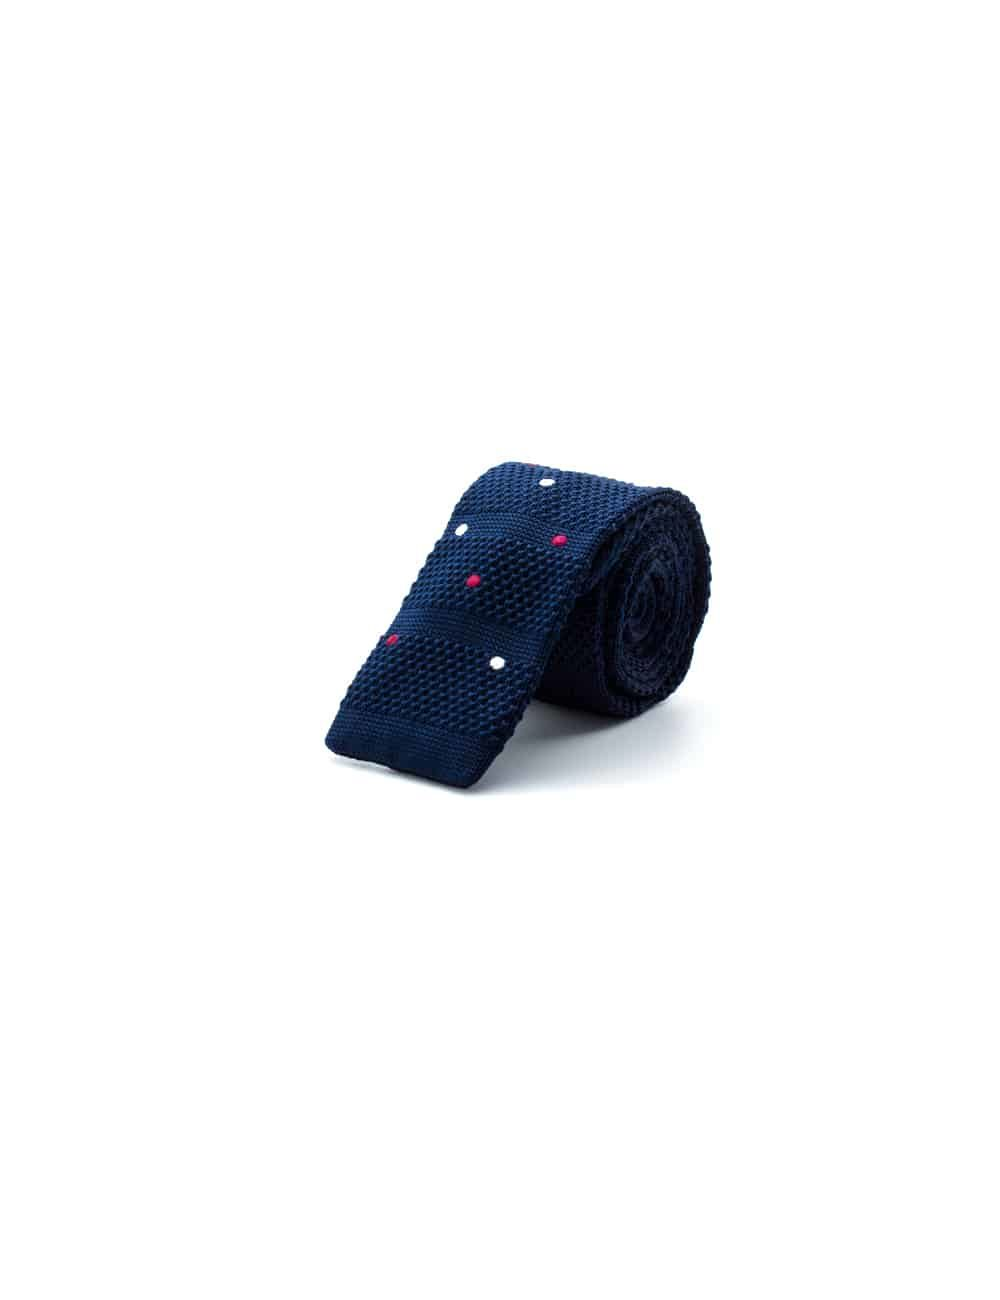 Navy with Pink and White Polka Dots Knitted Necktie KNT91.8